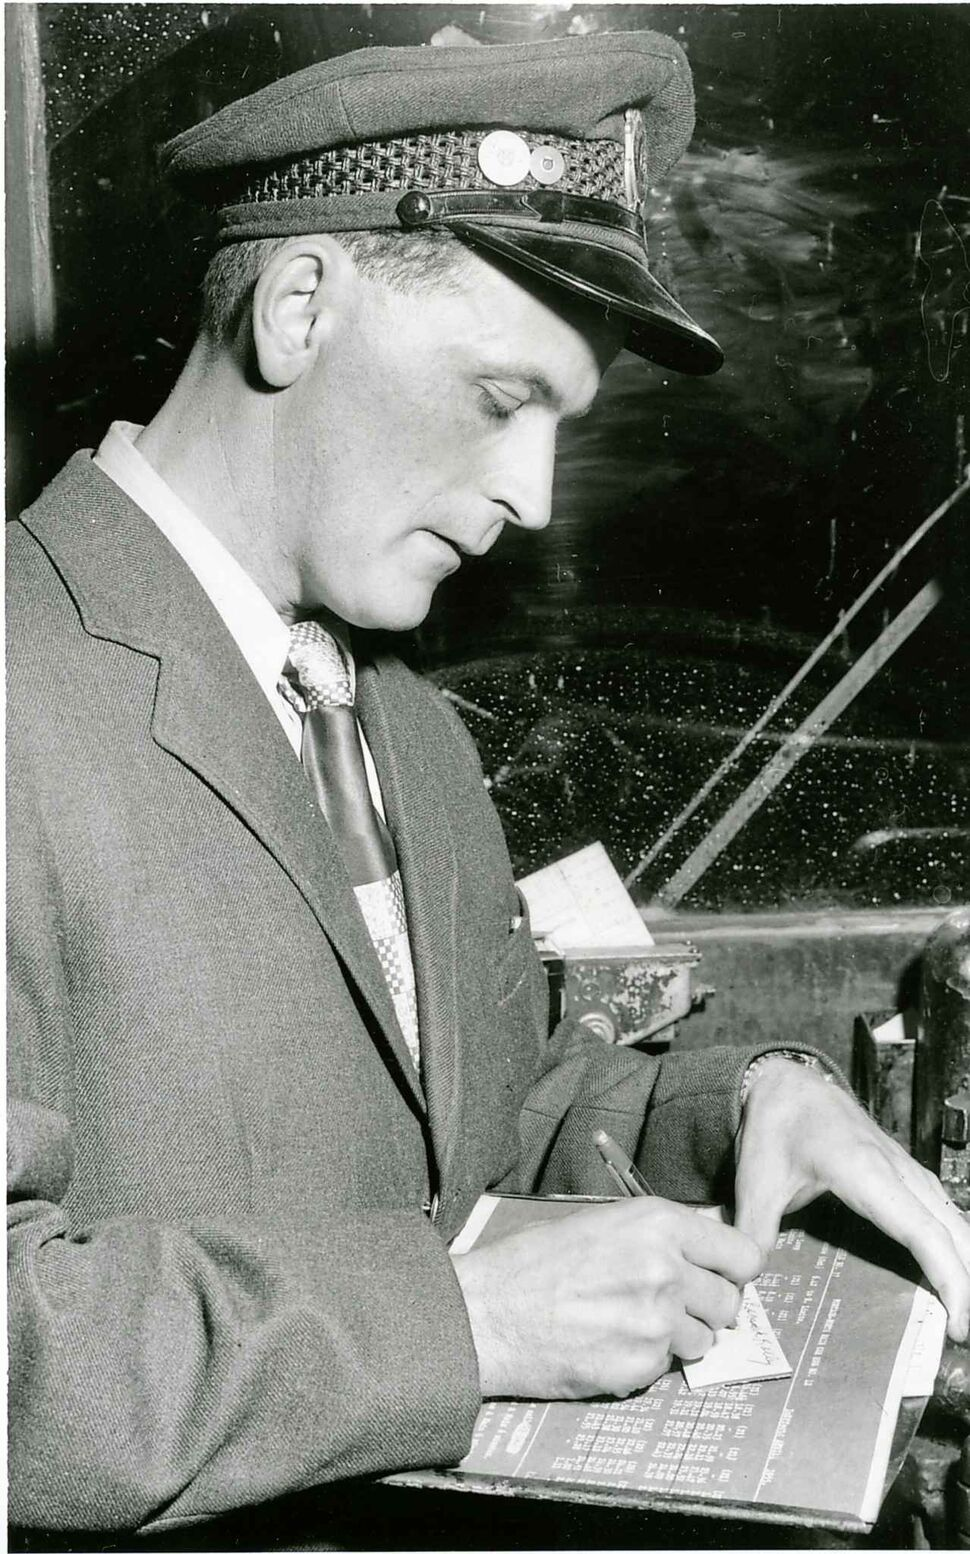 WINNIPEG FREE PRESS FILES A streetcar conductor autographs transfers during last trip of streetcar he was operating on Sept. 21, 1955.